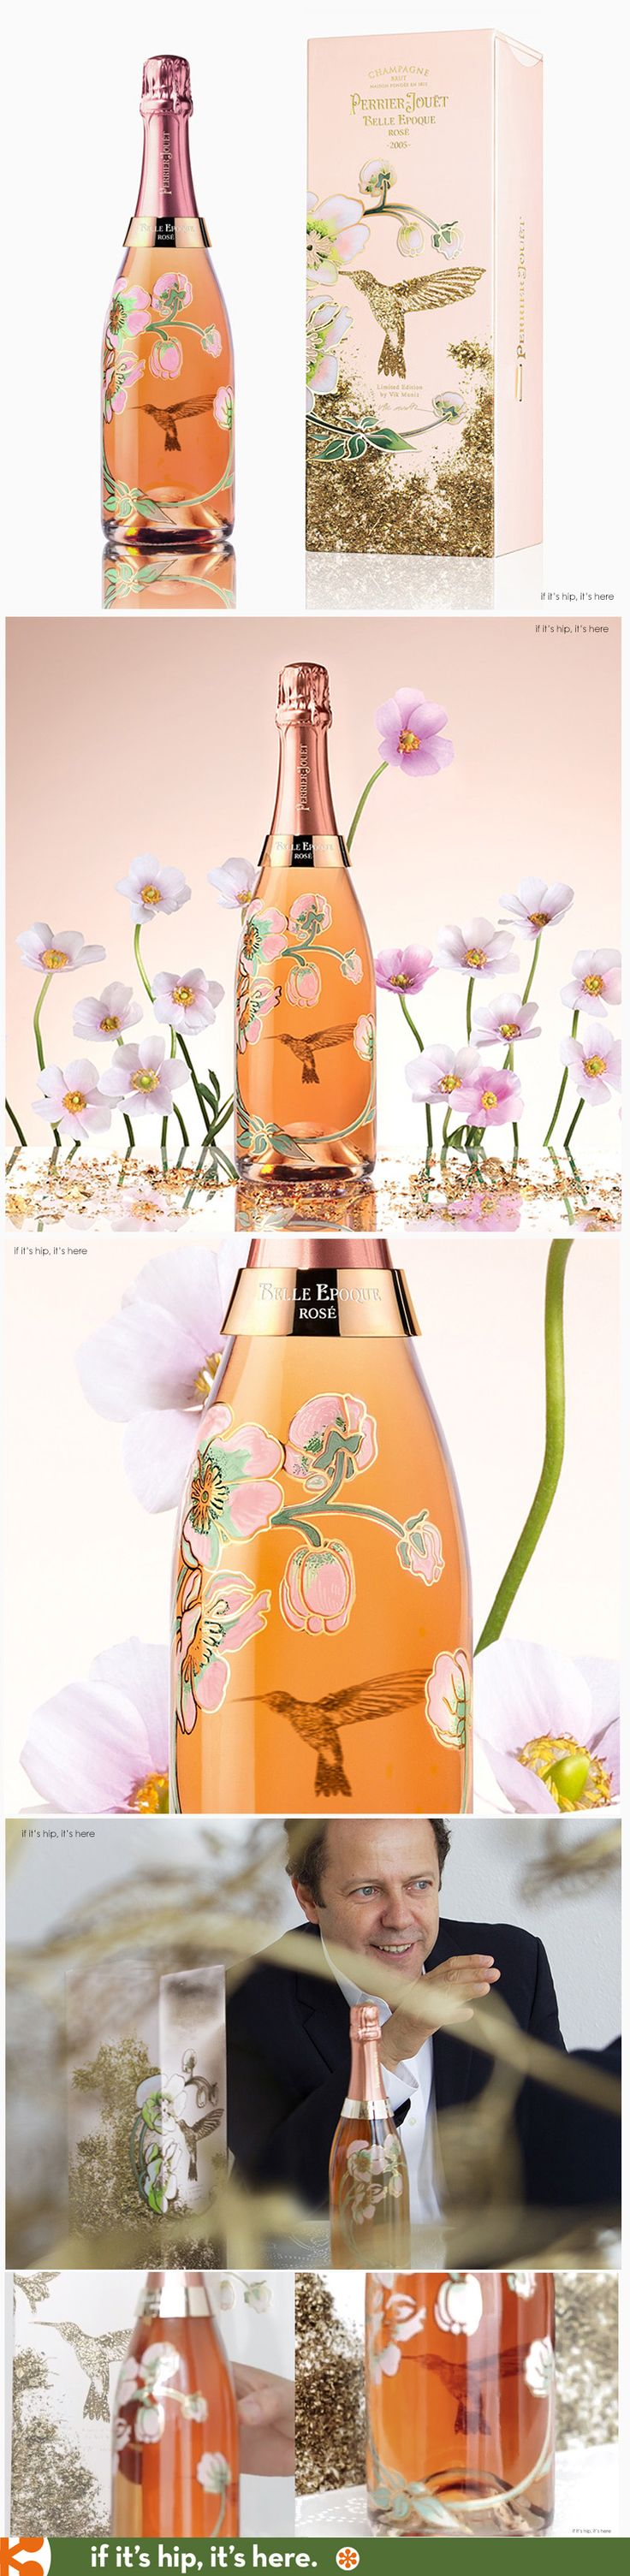 Artist Vik Muniz designs limited edition bottle and packaging for Perrier Jouet Belle Epoque Rose.   Video interview with Muniz and more pics at http://www.ifitshipitshere.com/artist-vik-muniz-creates-limited-edition-hummingbird-bottle-perrier-jouet/